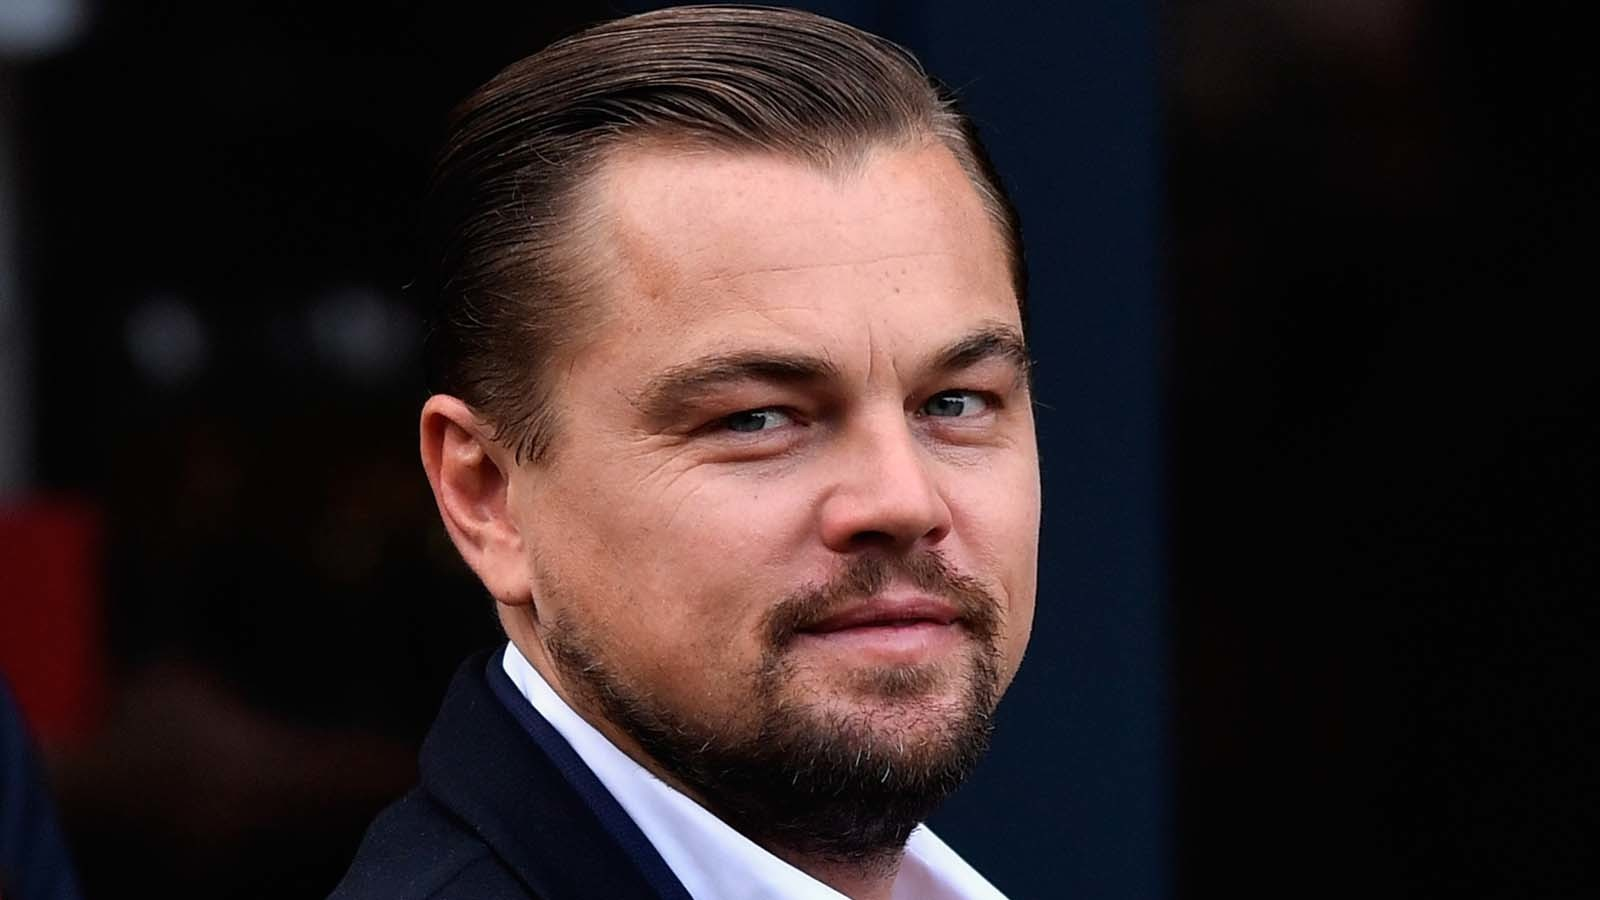 In Malaysia fund scandal, DiCaprio returns Oscar won by Brando